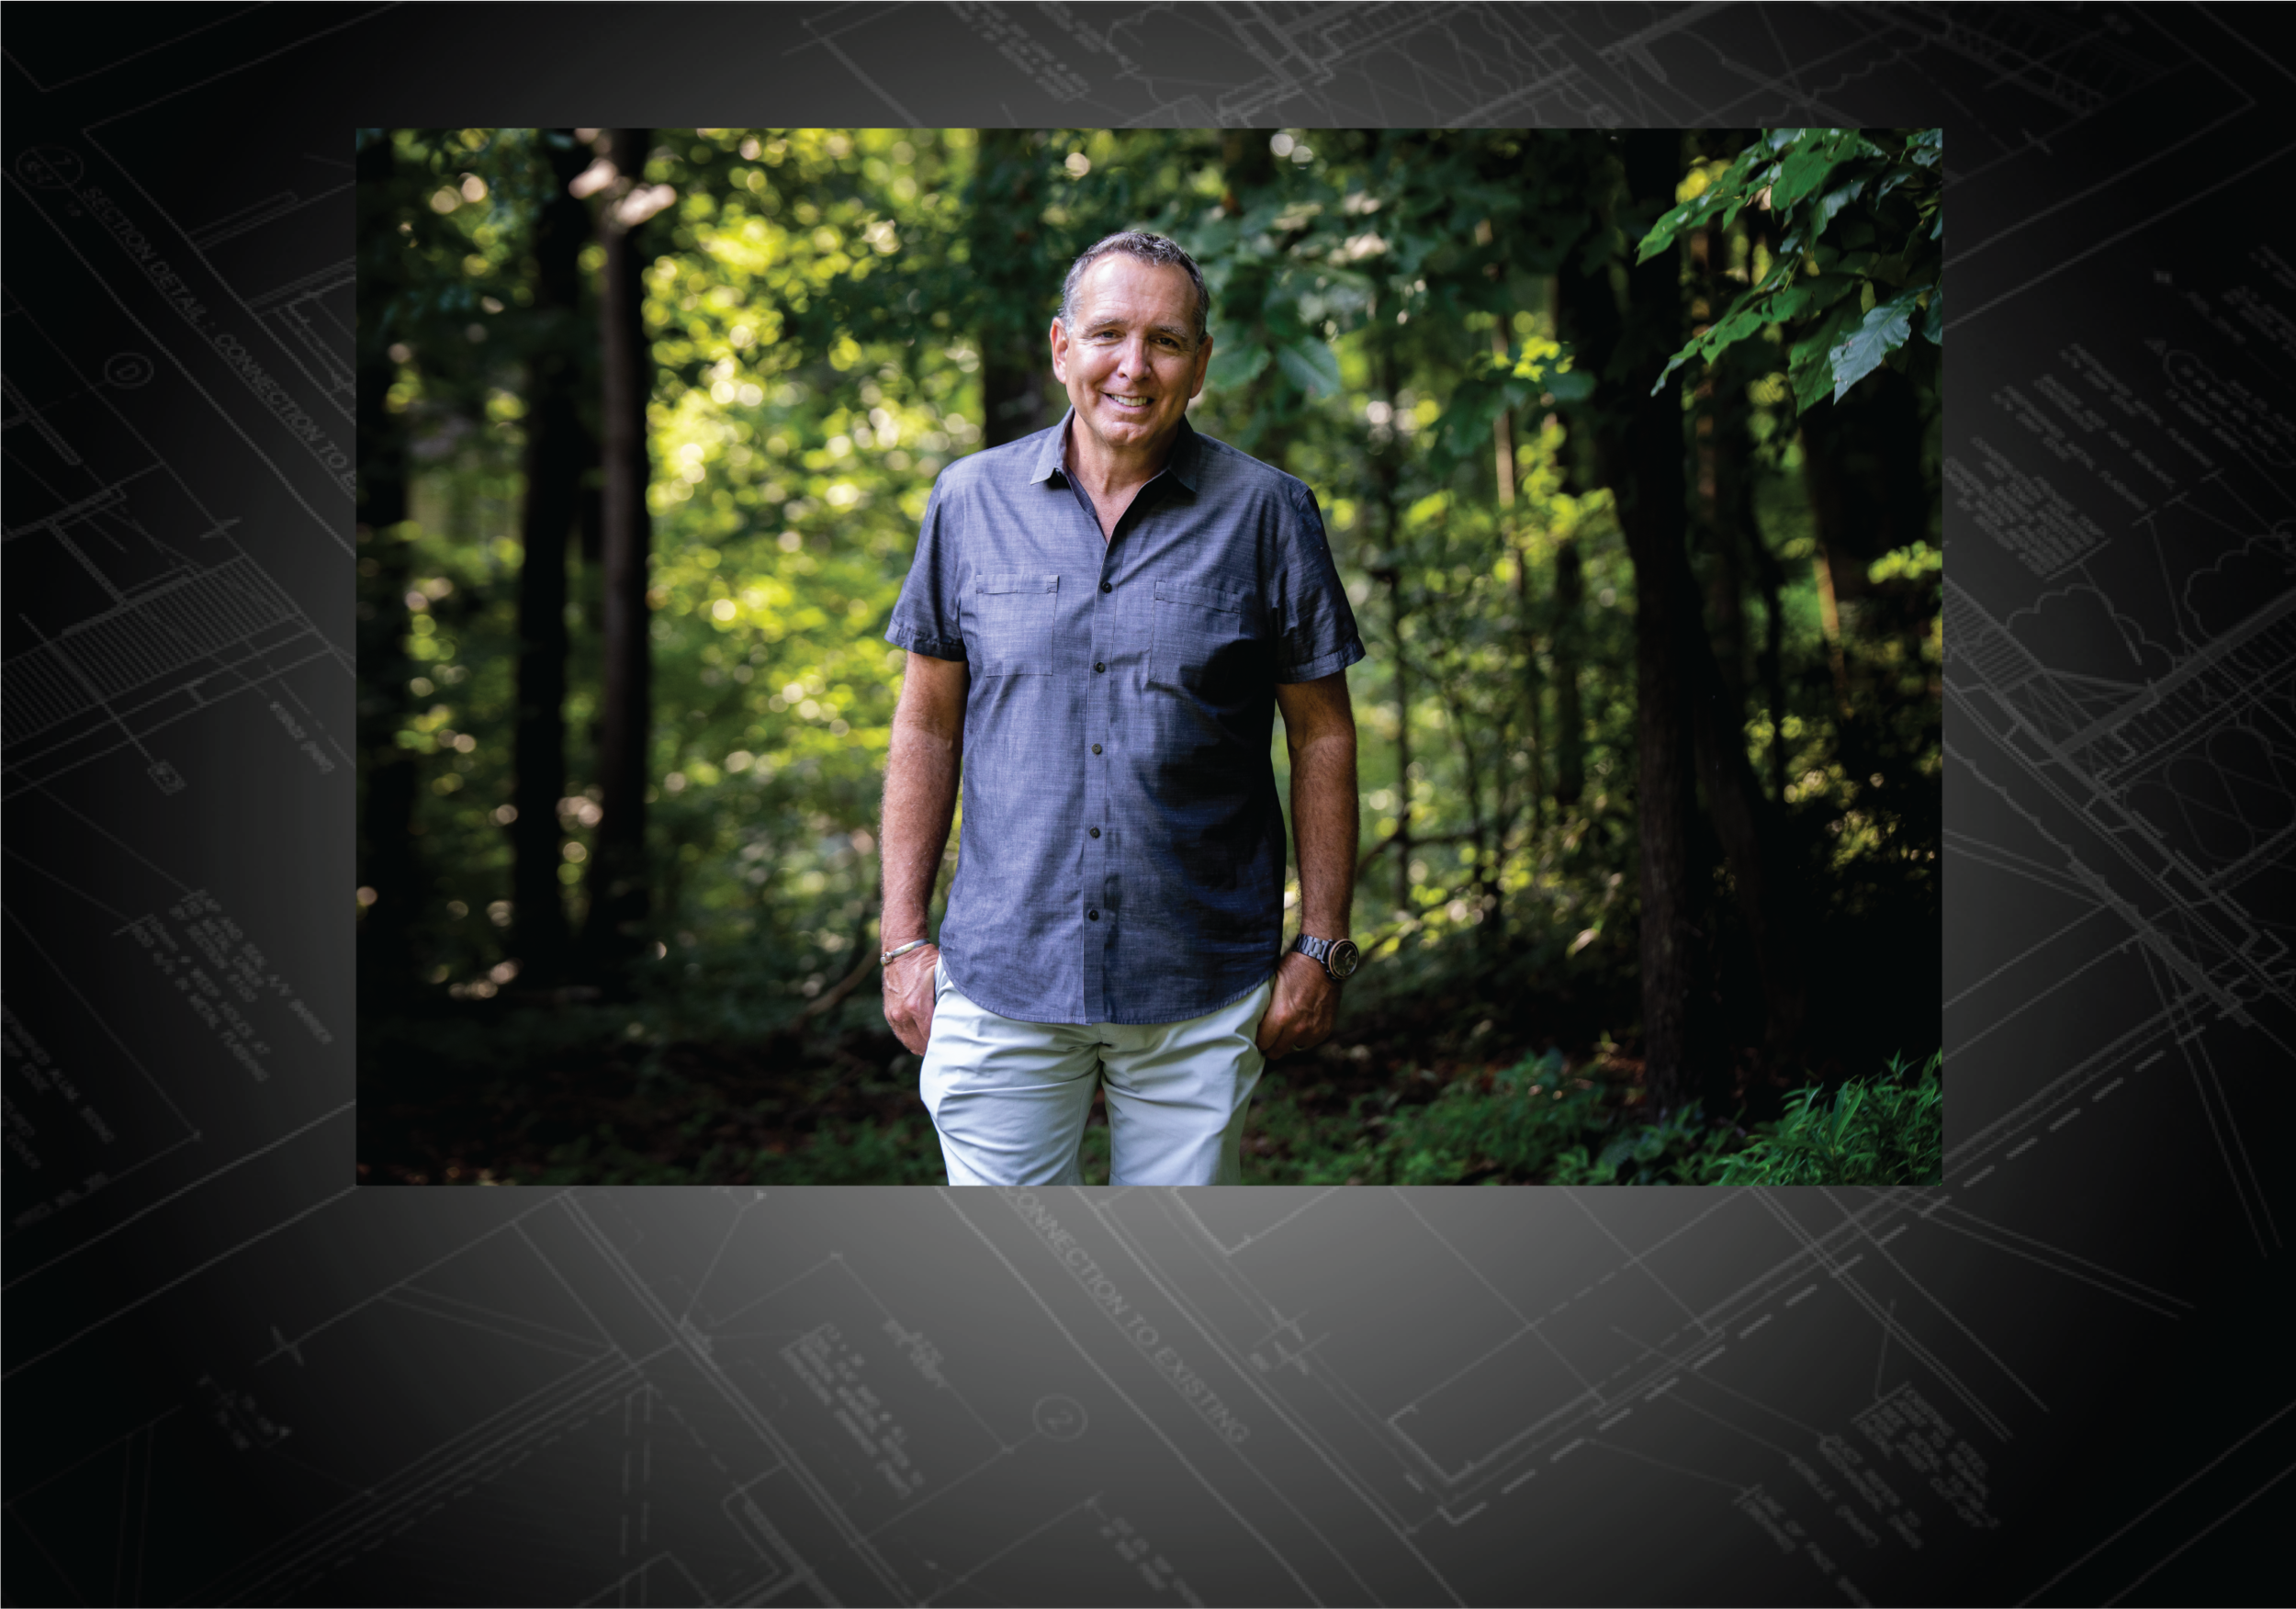 Steve Appler, Principal.  Steve oversees all aspects of Cairn Custom Home's design and building process from client meetings, lot feasibility assessment, conceptual home design through final architecture, structural engineering, civil engineering, production, quality control and on through Customer Service. Steve's experience in residential homebuilding dates back to 1979 and in these intervening years Steve has been responsible for the construction of over 1,500 single family homes, townhomes and mid-rise condominiums.  Steve has been on several local Boards of Directors including Habitat for Humanity – Howard County, Preservation Howard County and the Howard County Historical Society. Steve holds a BA from the University of Maryland, Baltimore County. He grew up in West Friendship in western Howard County and has remained a life-long Howard County resident. Steve and Lisa, wife and partner, have five adult kids between them. They enjoy travel to visit their kids scattered around the country and beyond, and to their small cabin at Deep Creek Lake for quiet weekends.